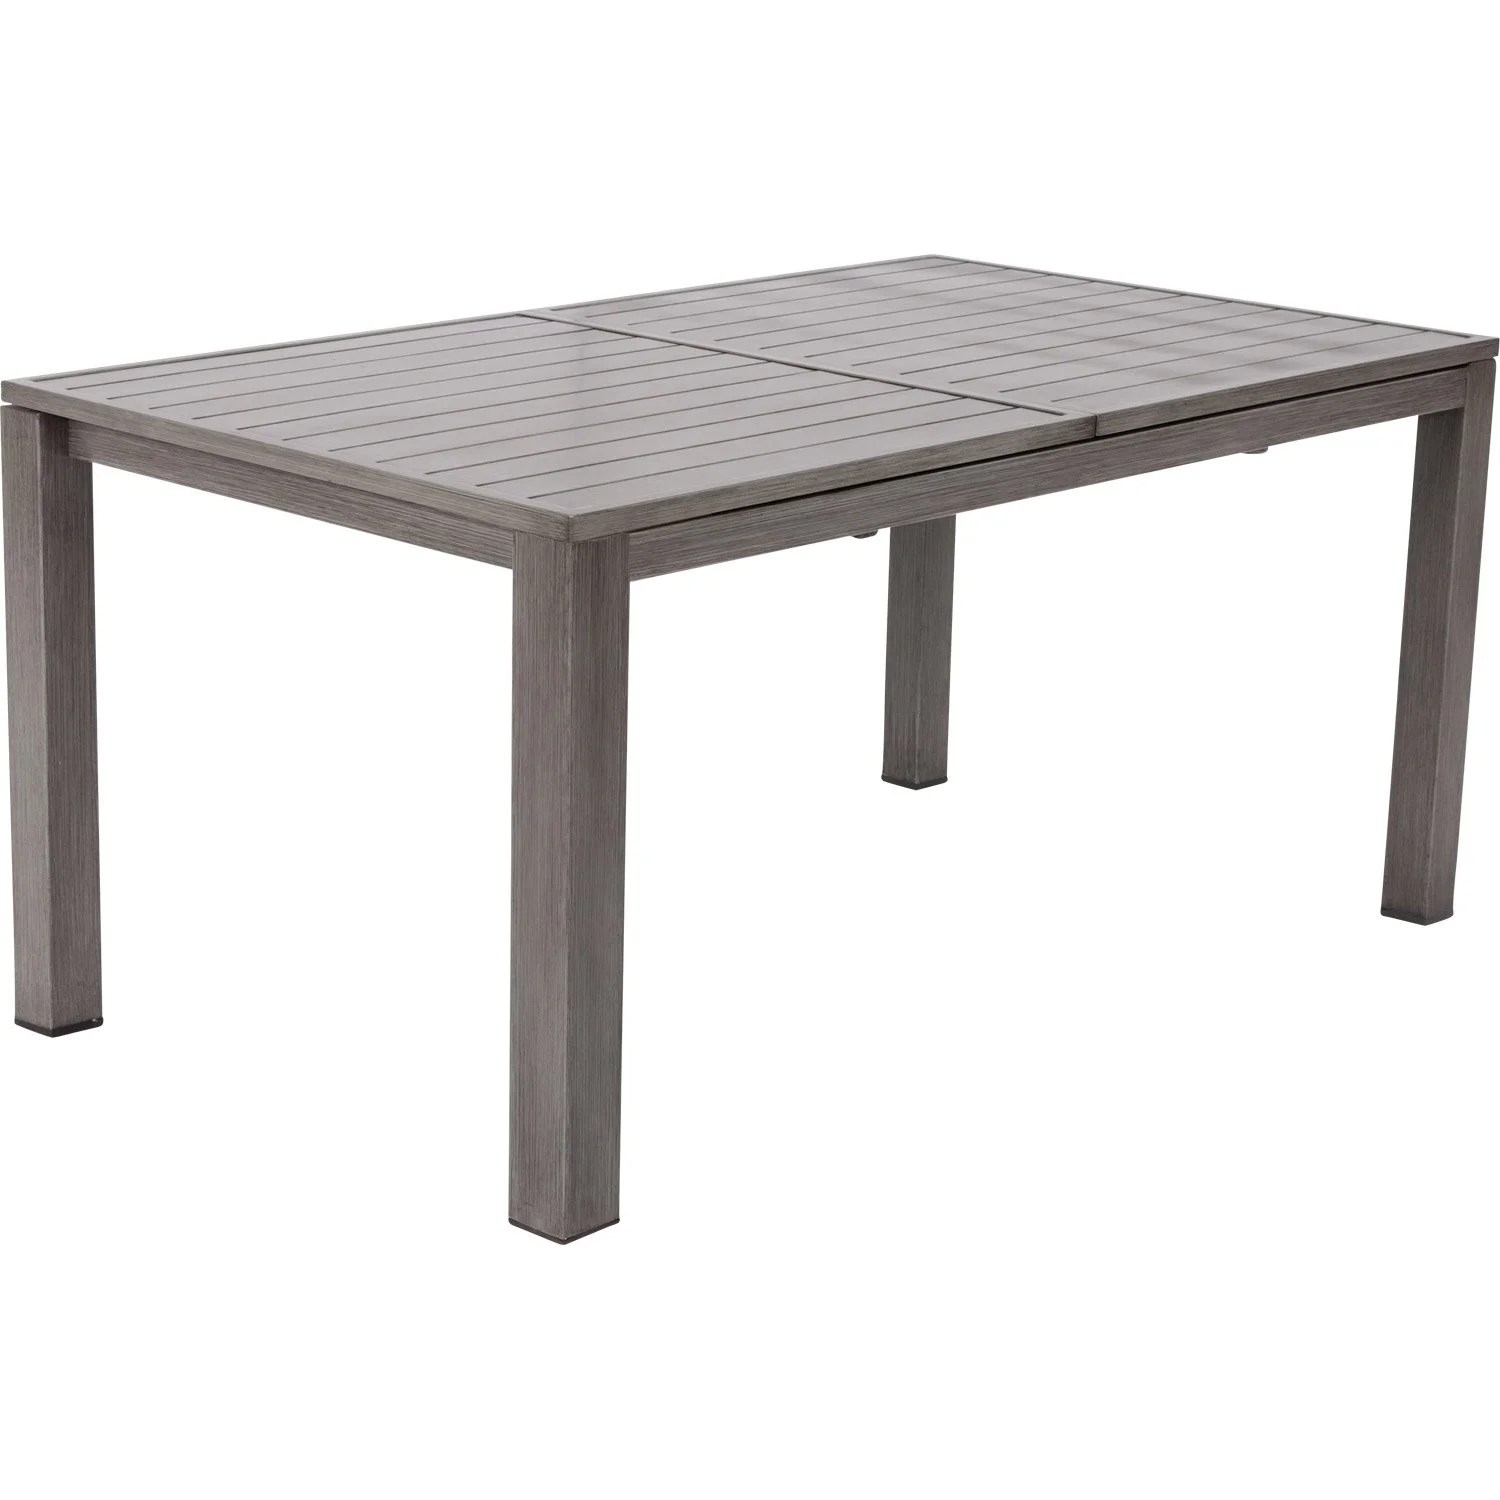 Table De Jardin Table De Jardin Naterial Antibes Rectangulaire Gris Look